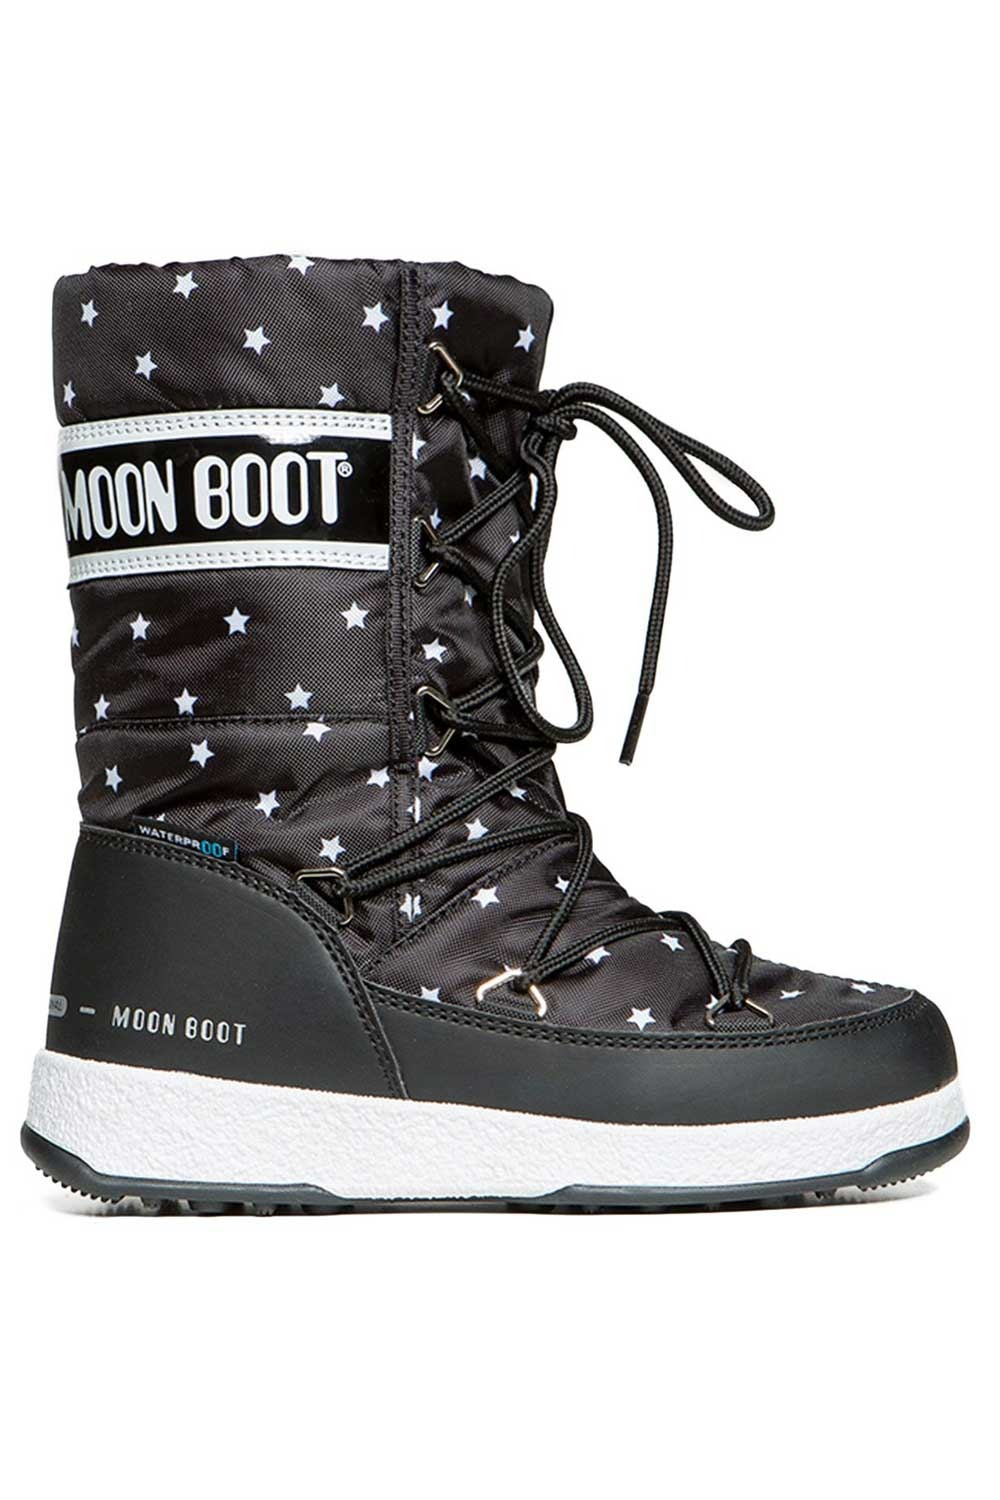 문부츠 키즈 방한부츠 JR 걸 퀼티드 스타 WP_MOONBOOT YOUTH MOON BOOT JR GIRL QUILTED STAR WP_BLACK/WHITE_VMQ863BE_AVMQ863BE